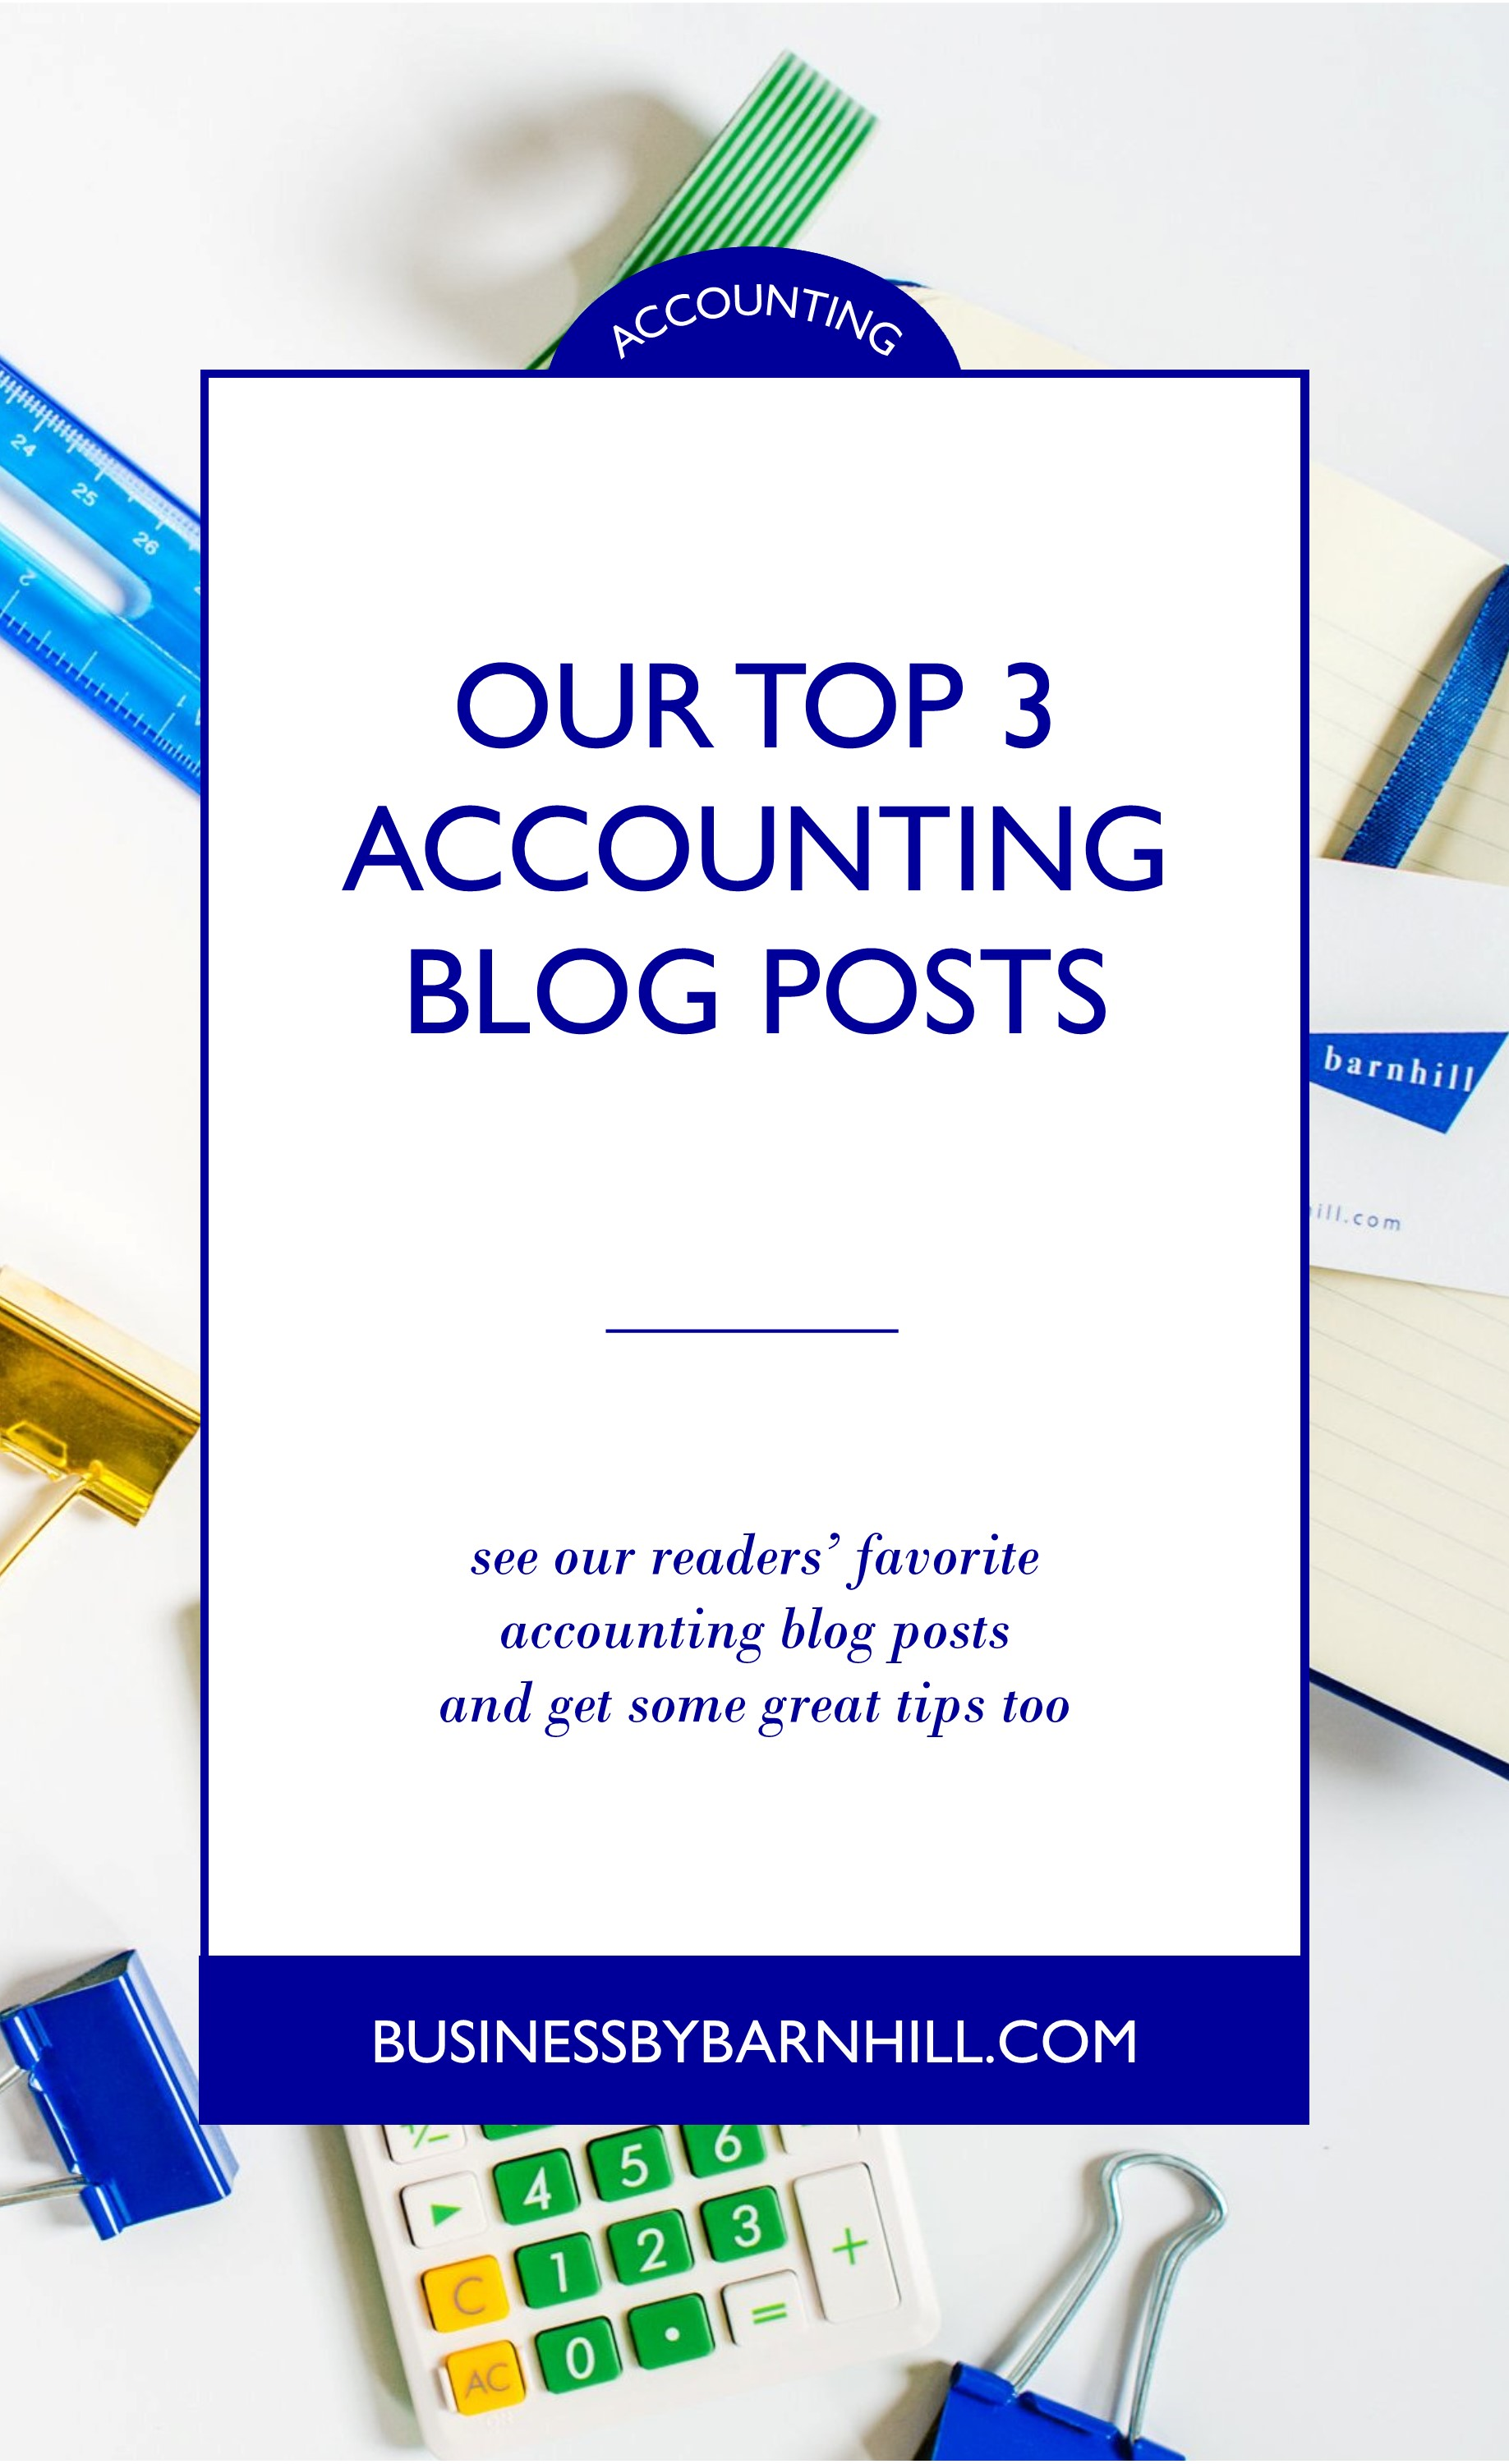 business by barnhill pinterest our top 3 accounting blog posts.jpg